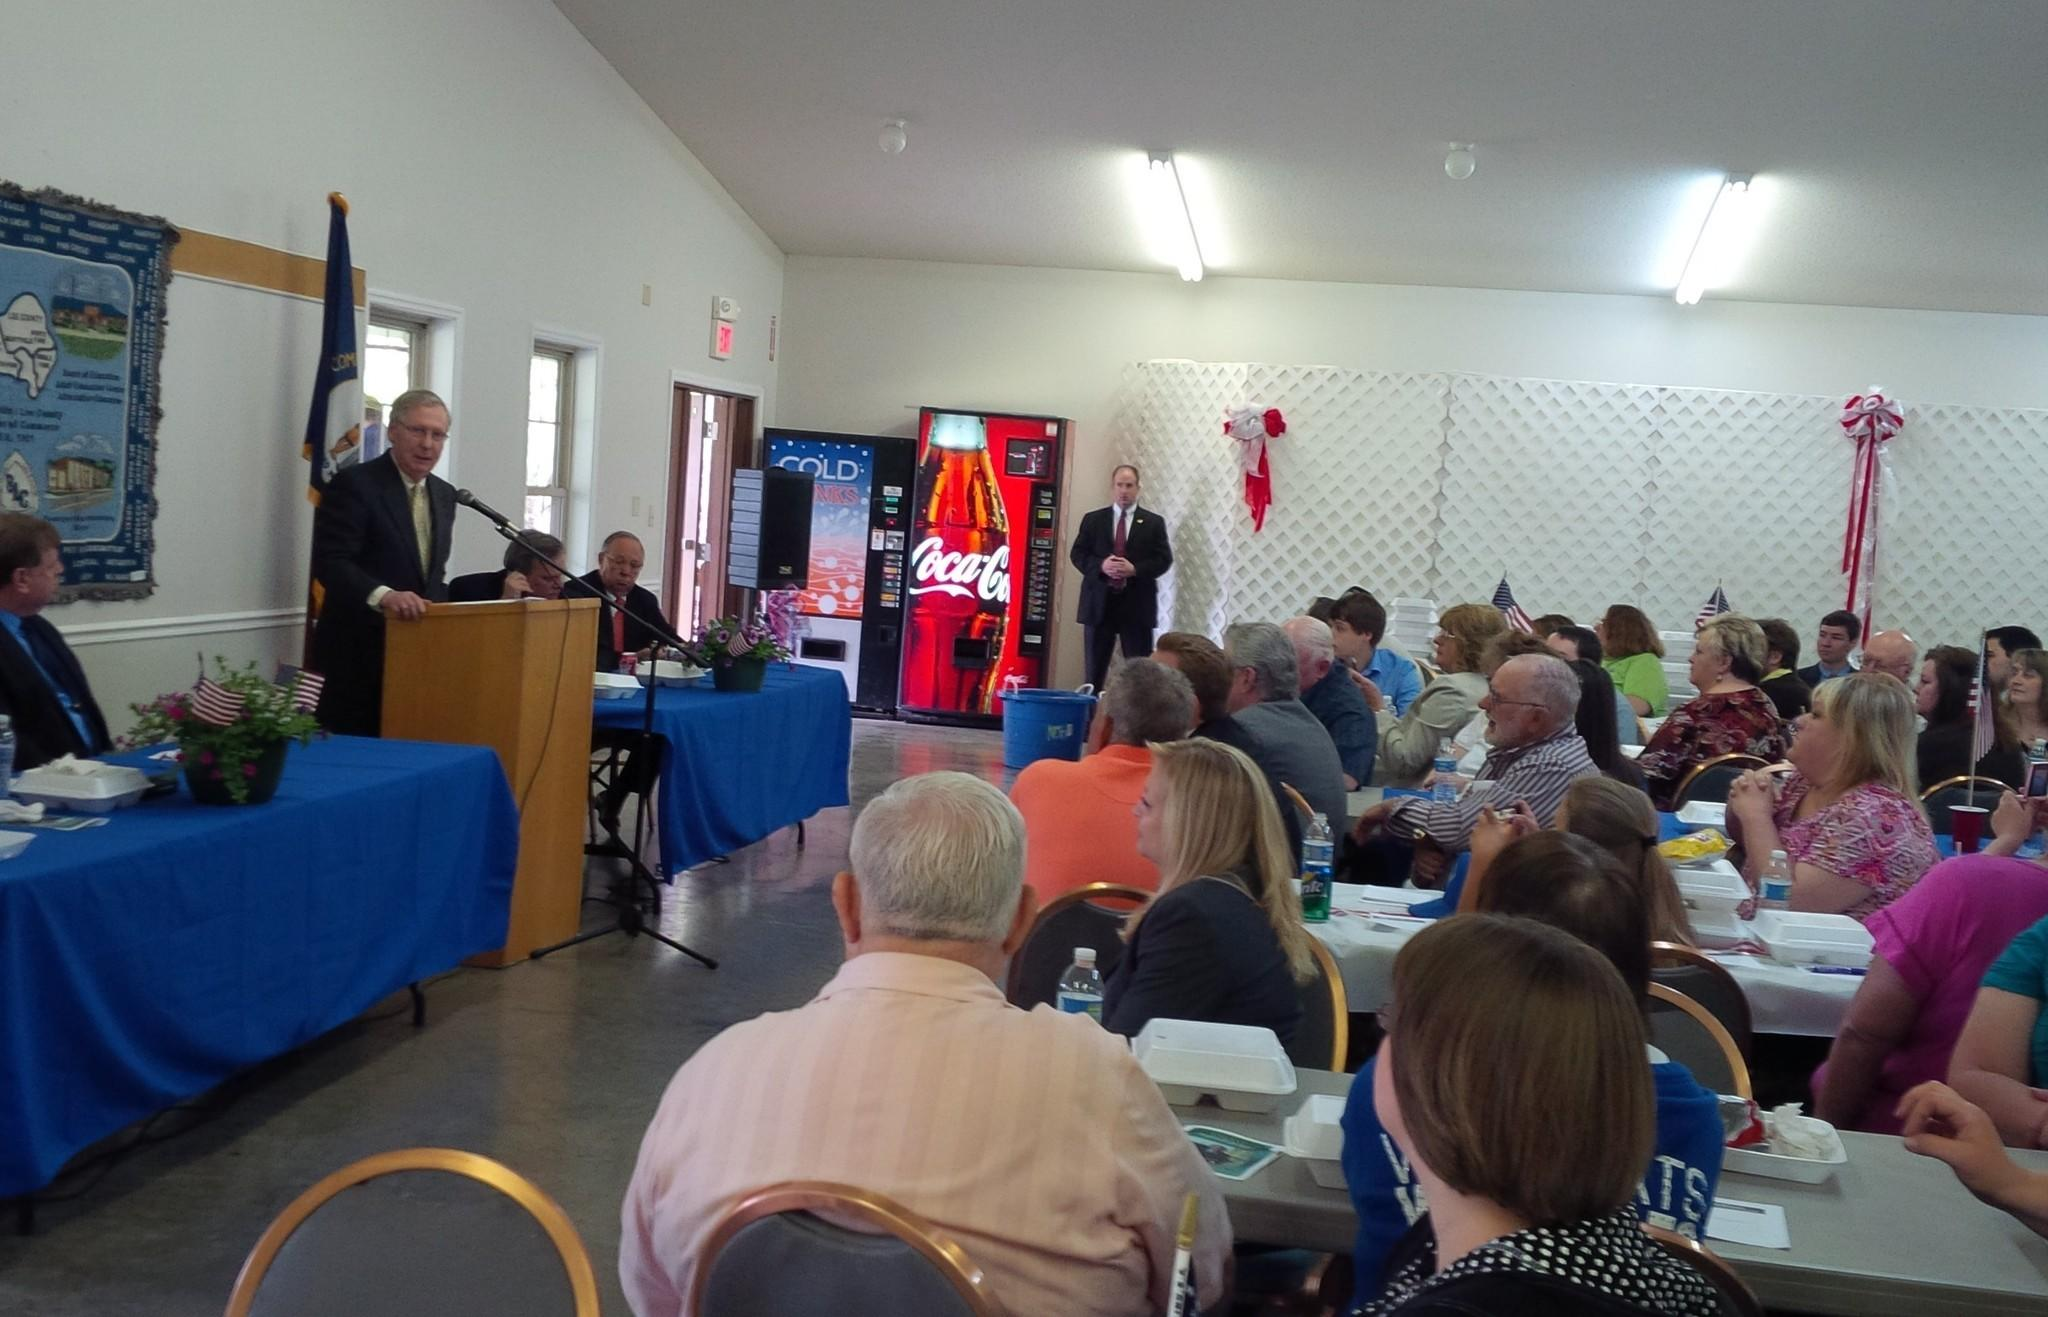 Senate Republican Leader Mitch McConnell speaks at a luncheon at the Happy Top Community Center in Beattyville, Ky.